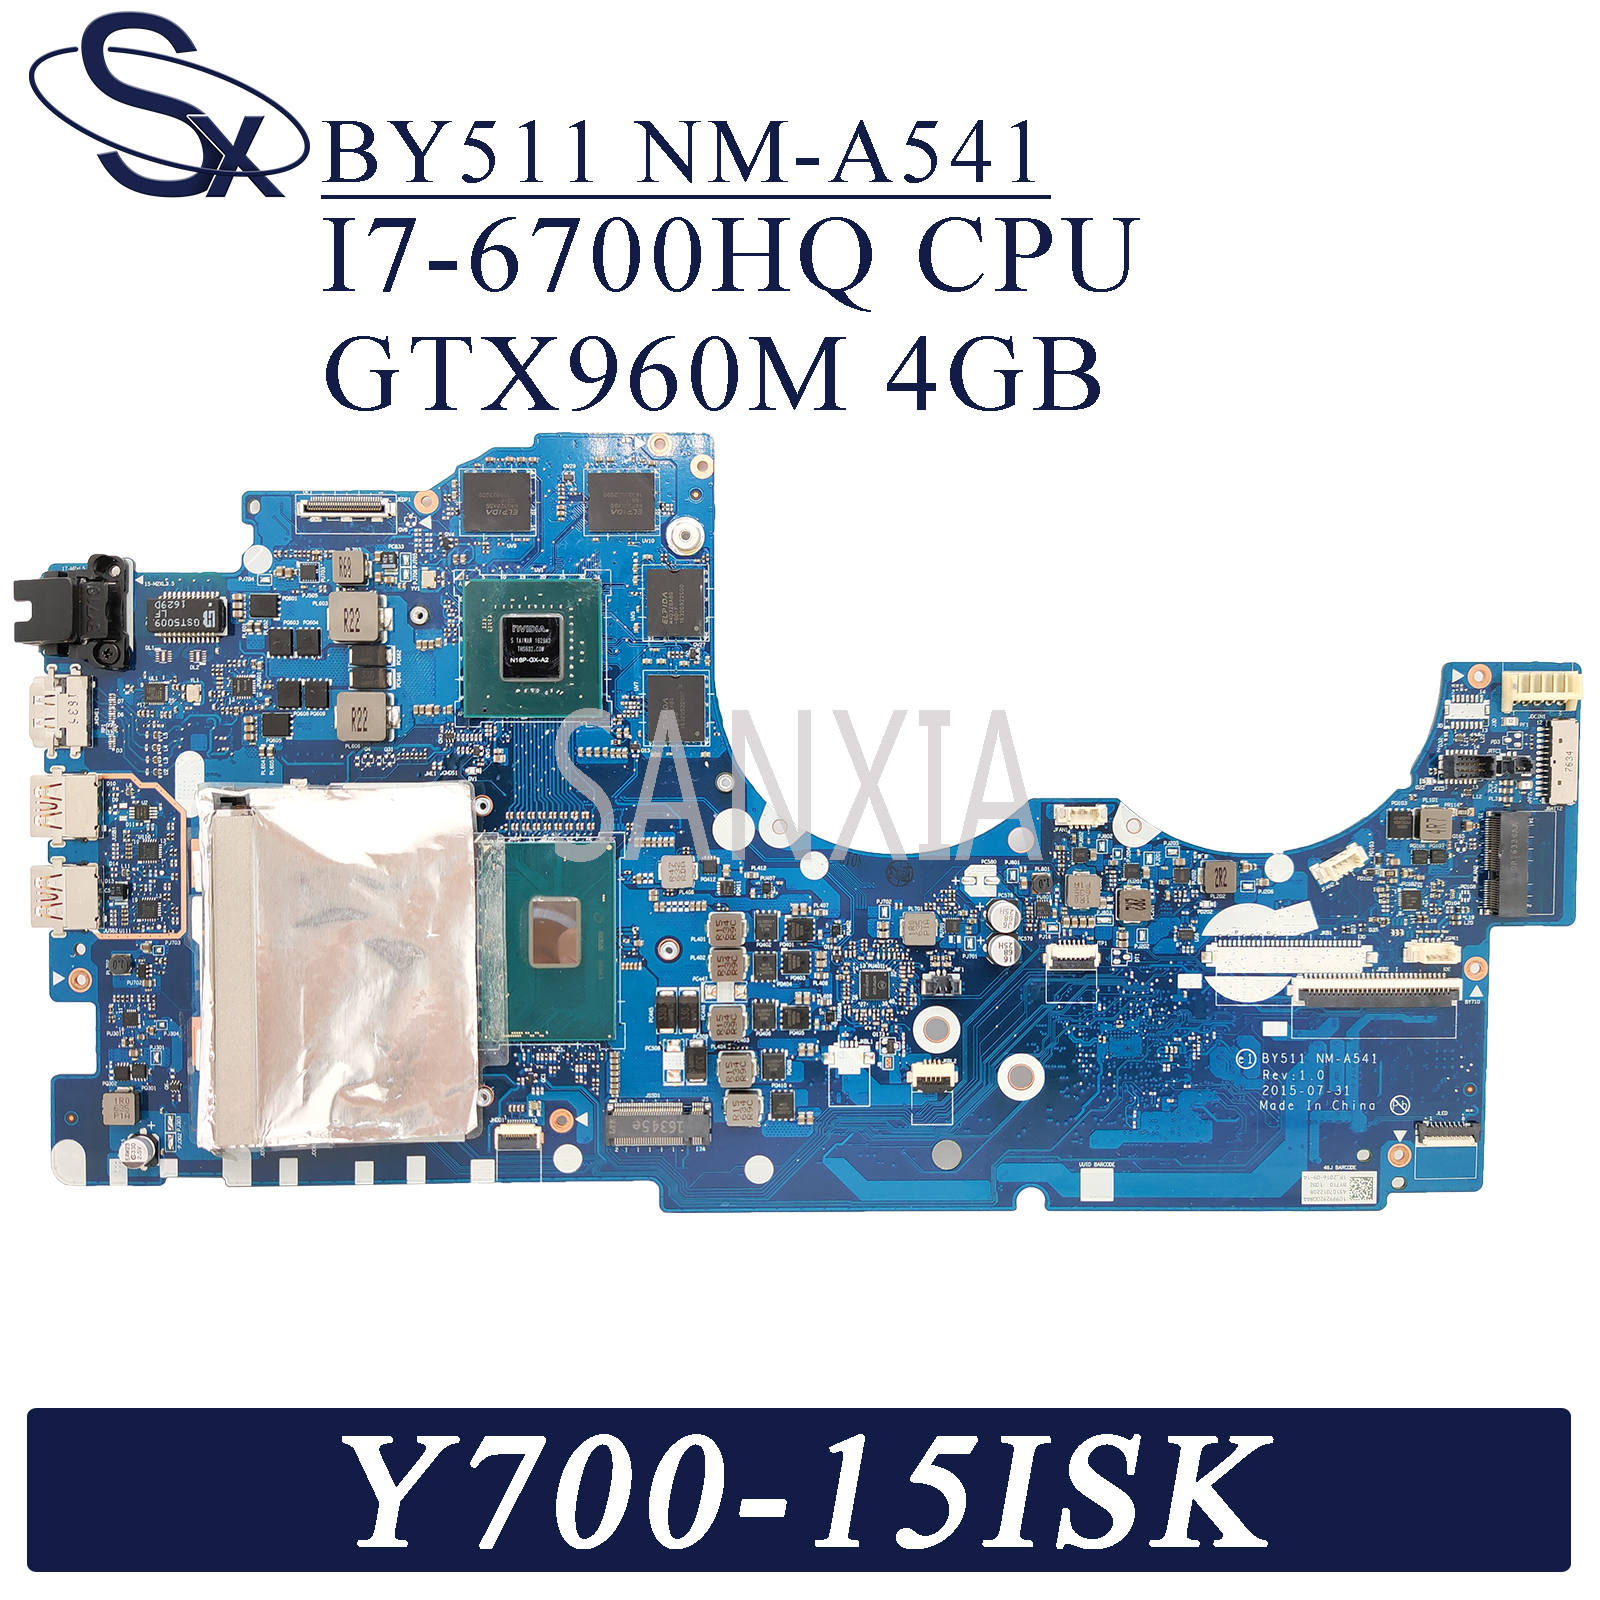 KEFU NM-A541 <font><b>Laptop</b></font> motherboard for <font><b>Lenovo</b></font> <font><b>Y700</b></font>-15ISK original mainboard HM170 I7-6700HQ GTX960M-4GB image